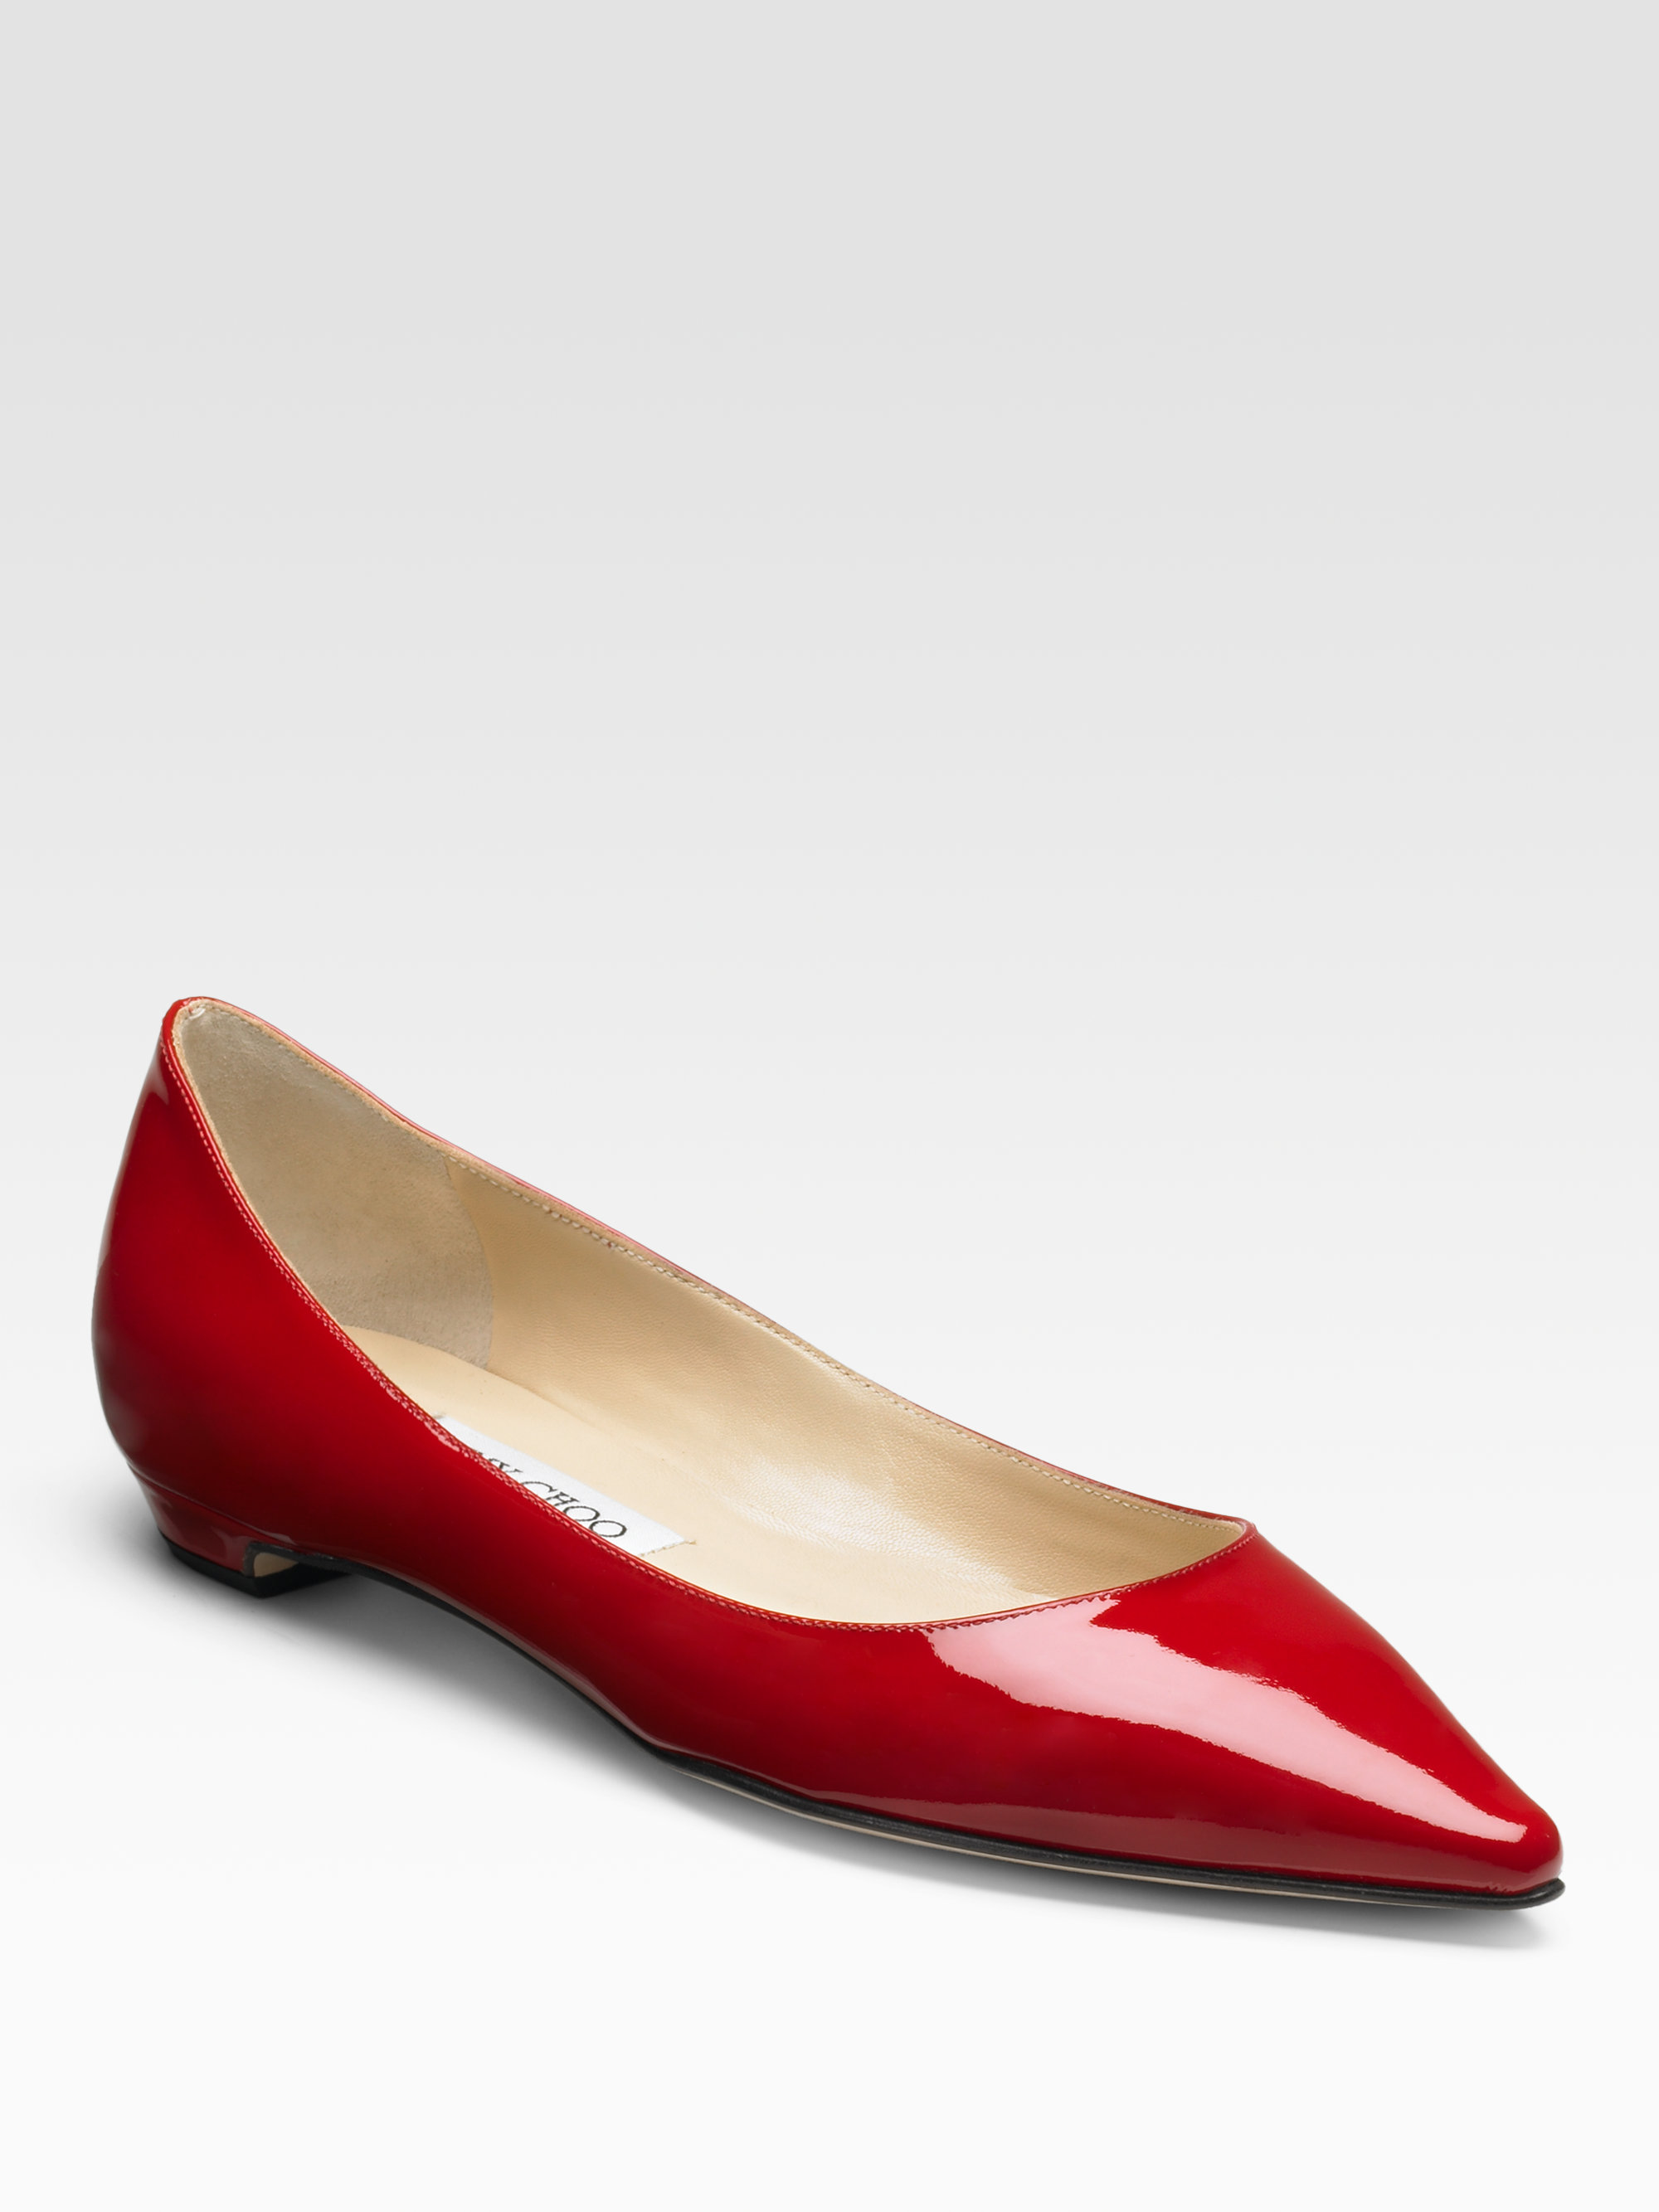 89e9fb5e51ae ... uk lyst jimmy choo sandy patent leather pointtoe flats in red f57cb  ea3dd